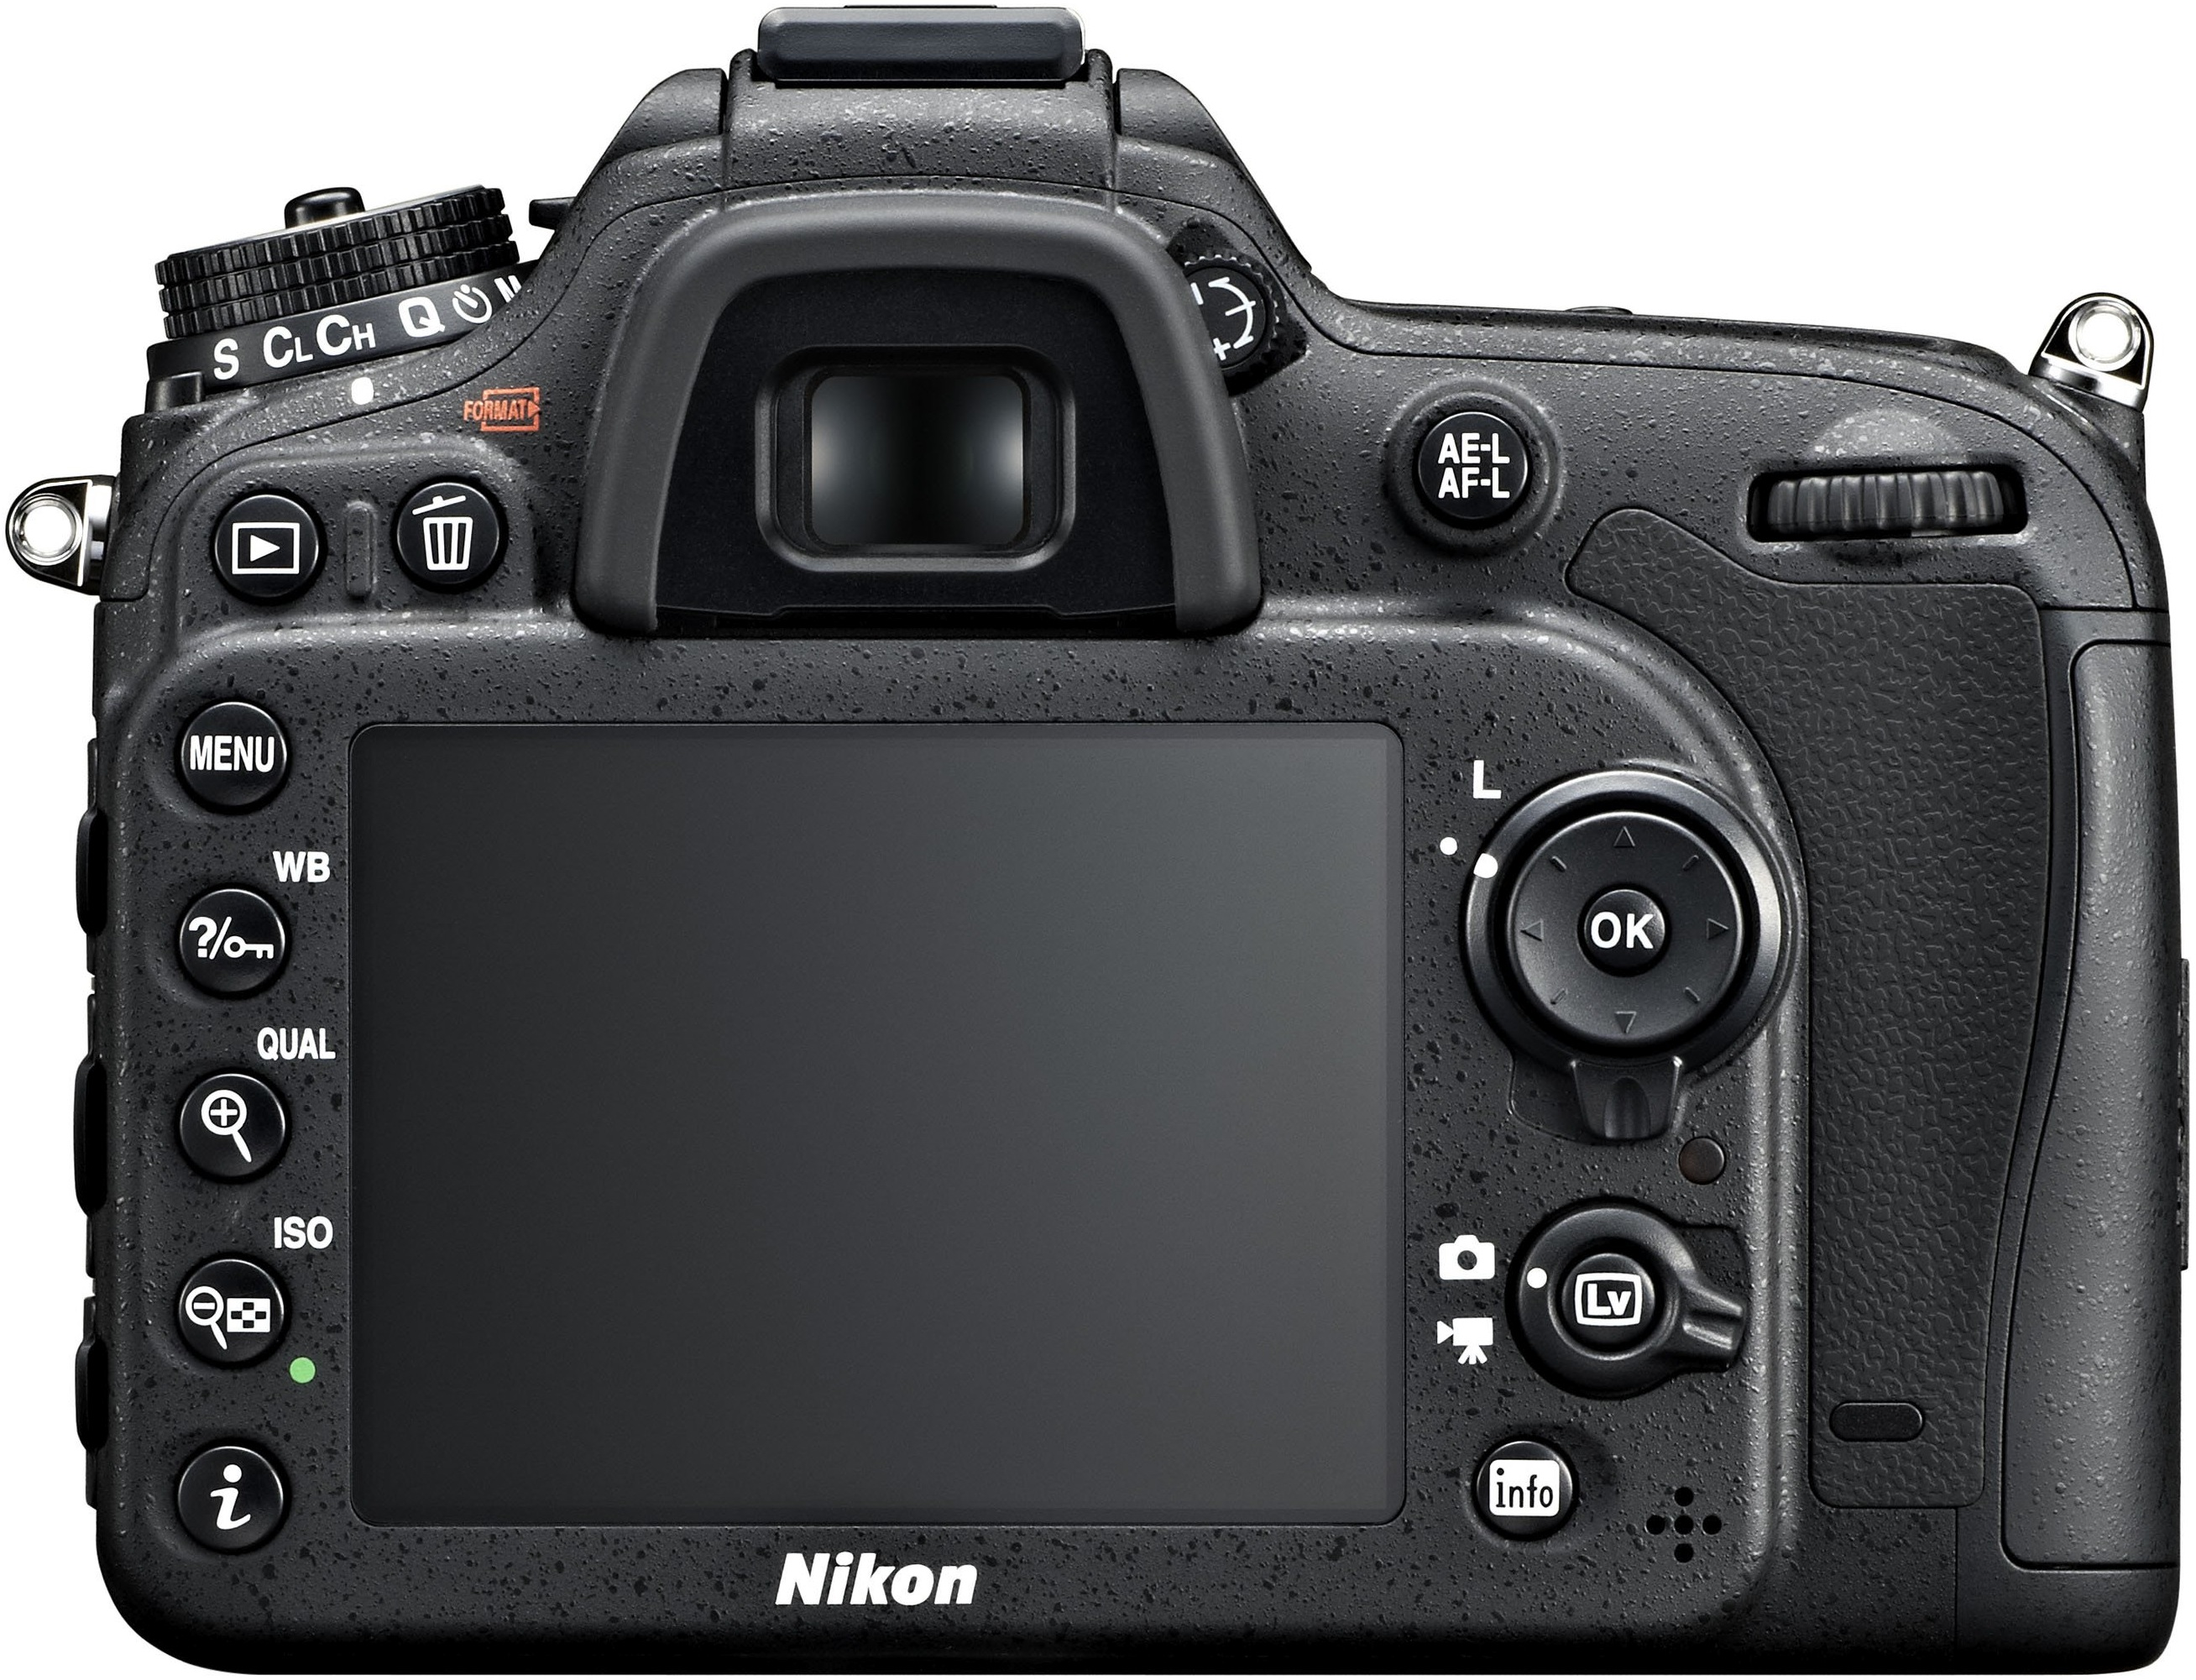 Camera Semi Dslr Cameras nikon announces the d7100 1200 gets you an aps c semi pro dslr with uncompressed hdmi